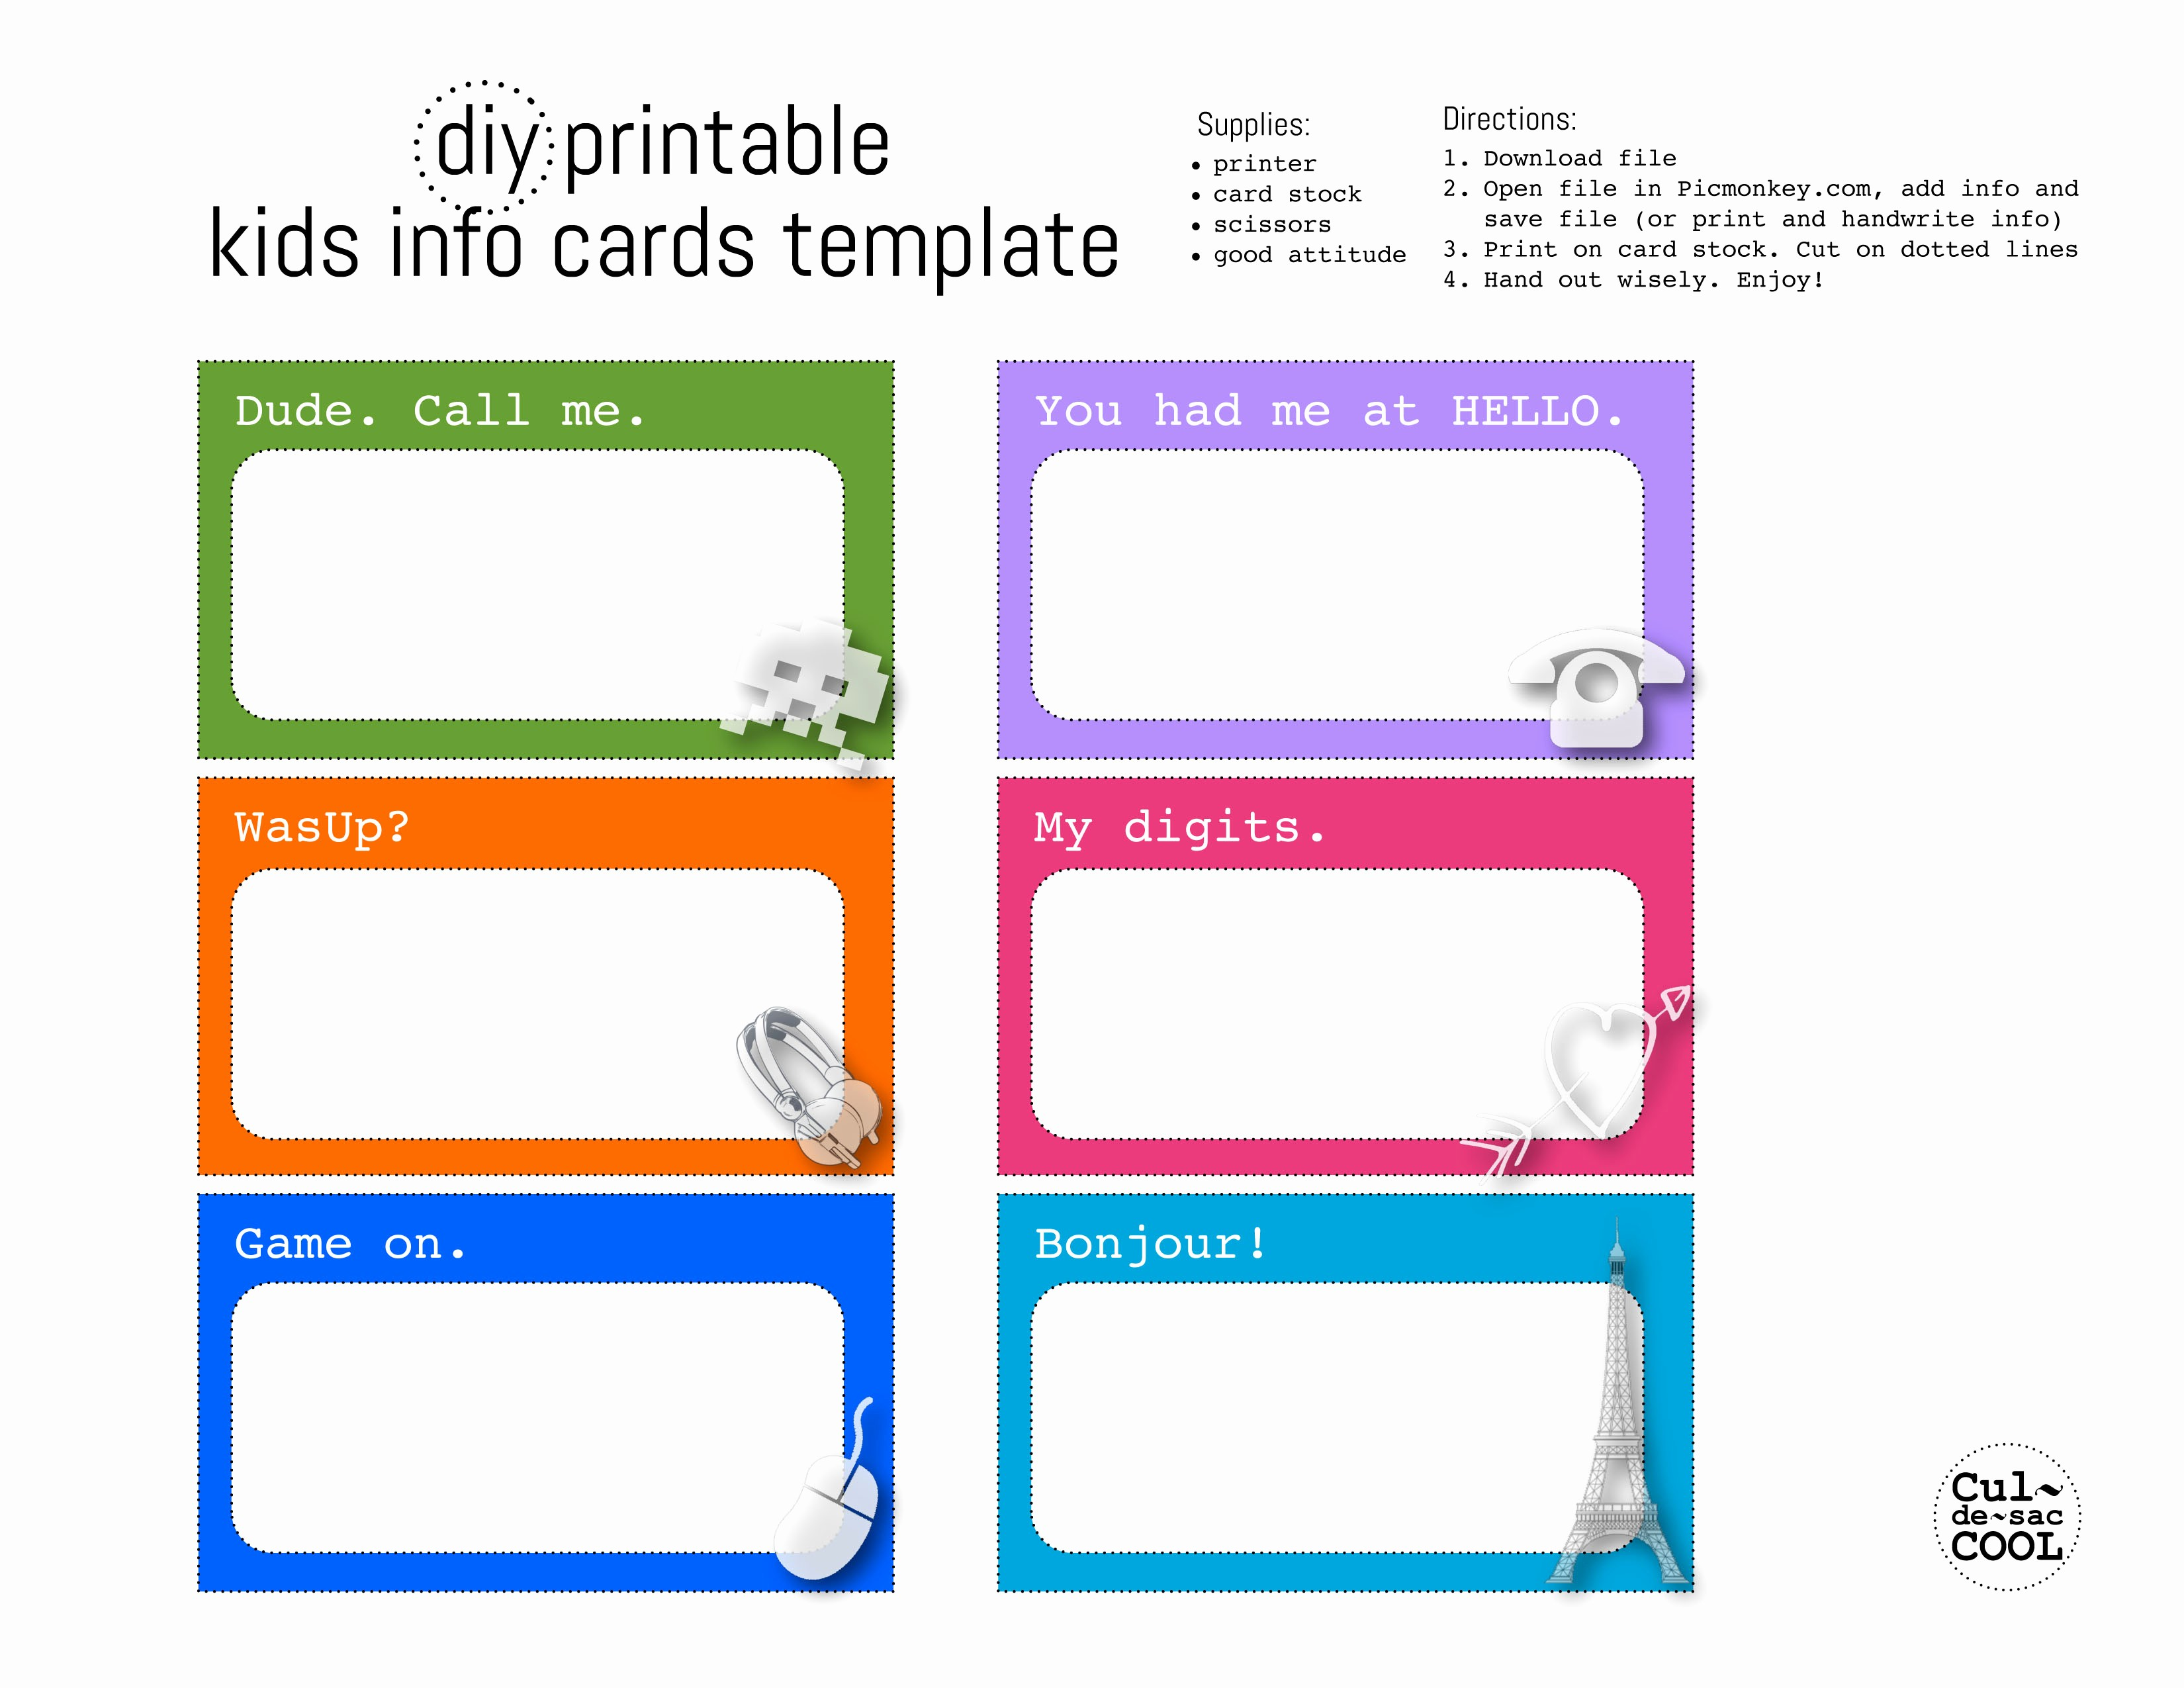 Free Printable Id Card Template Awesome Diy Printable Kids Info Cards Template